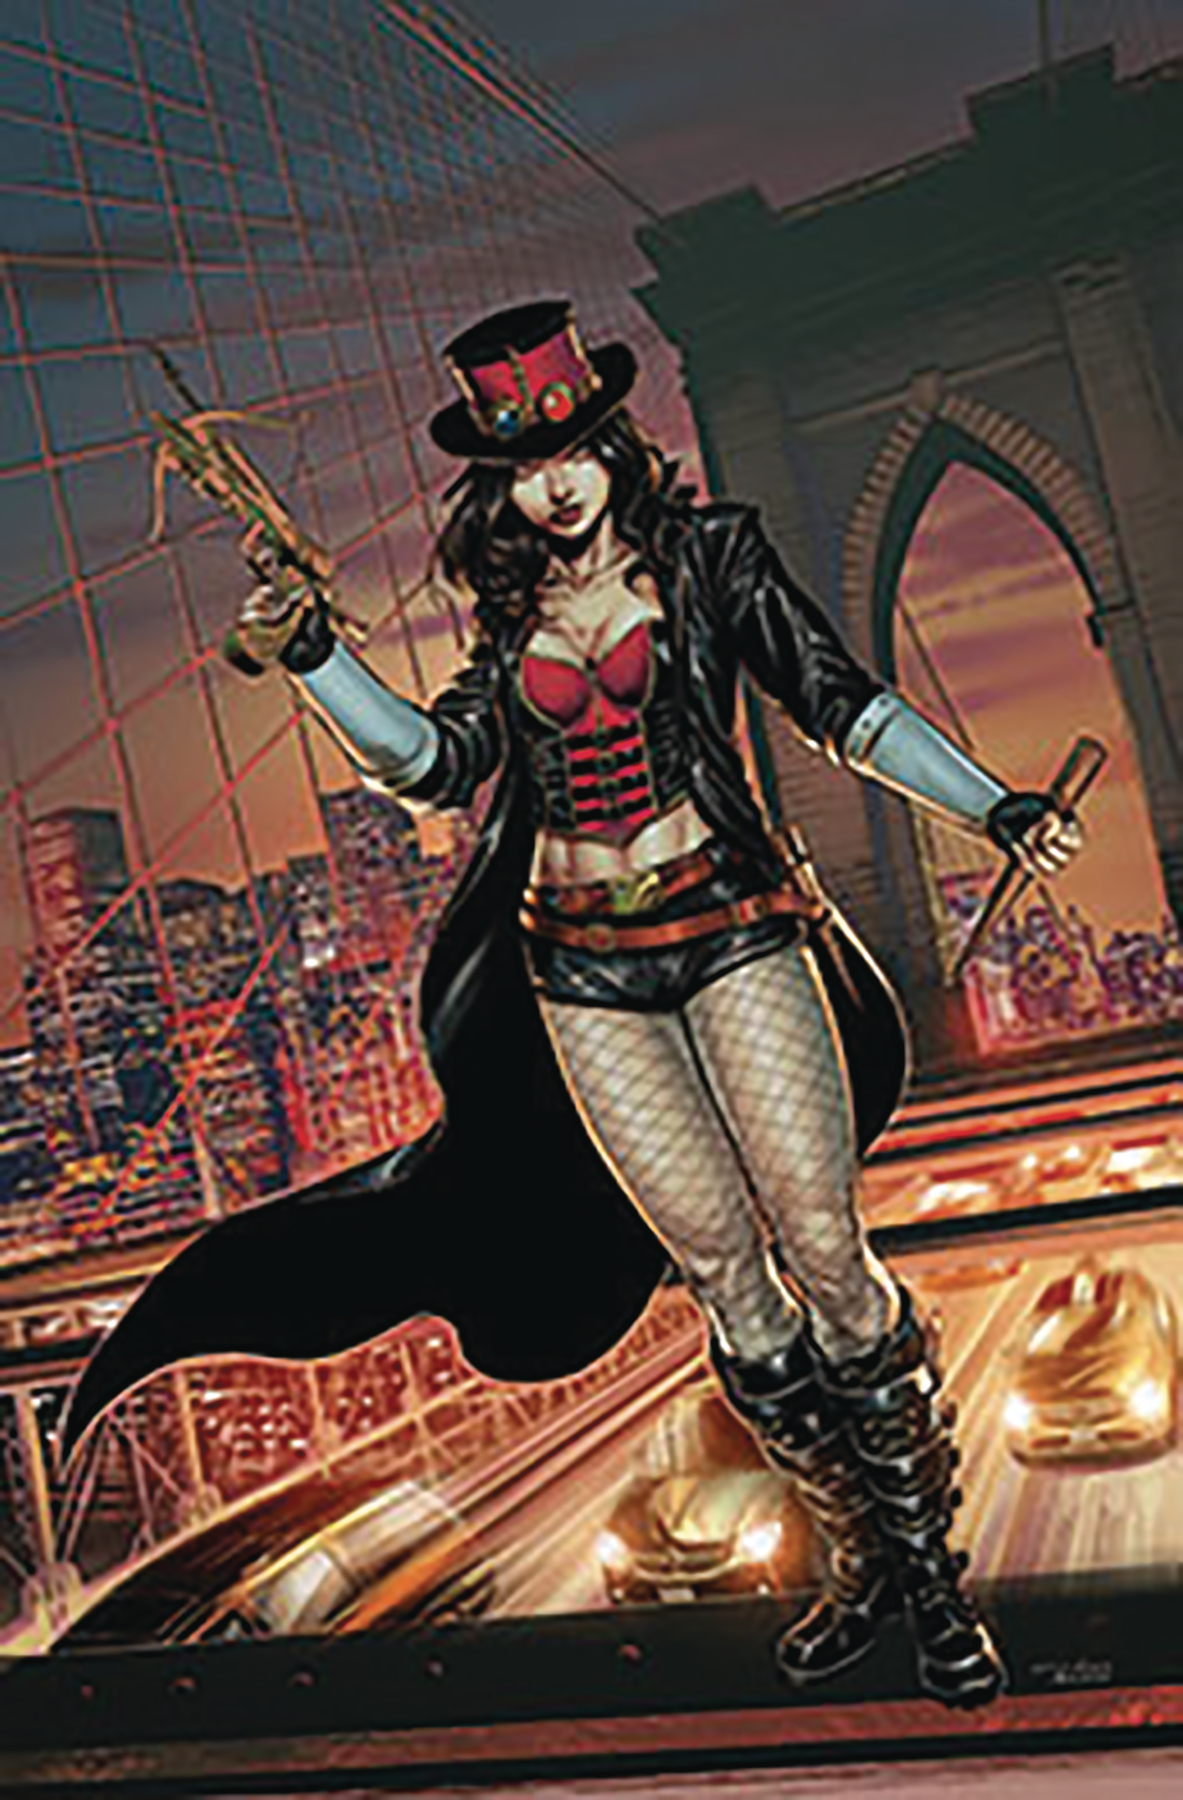 VAN HELSING VS DRACULAS DAUGHTER #2 (OF 5) CVR A MARIA